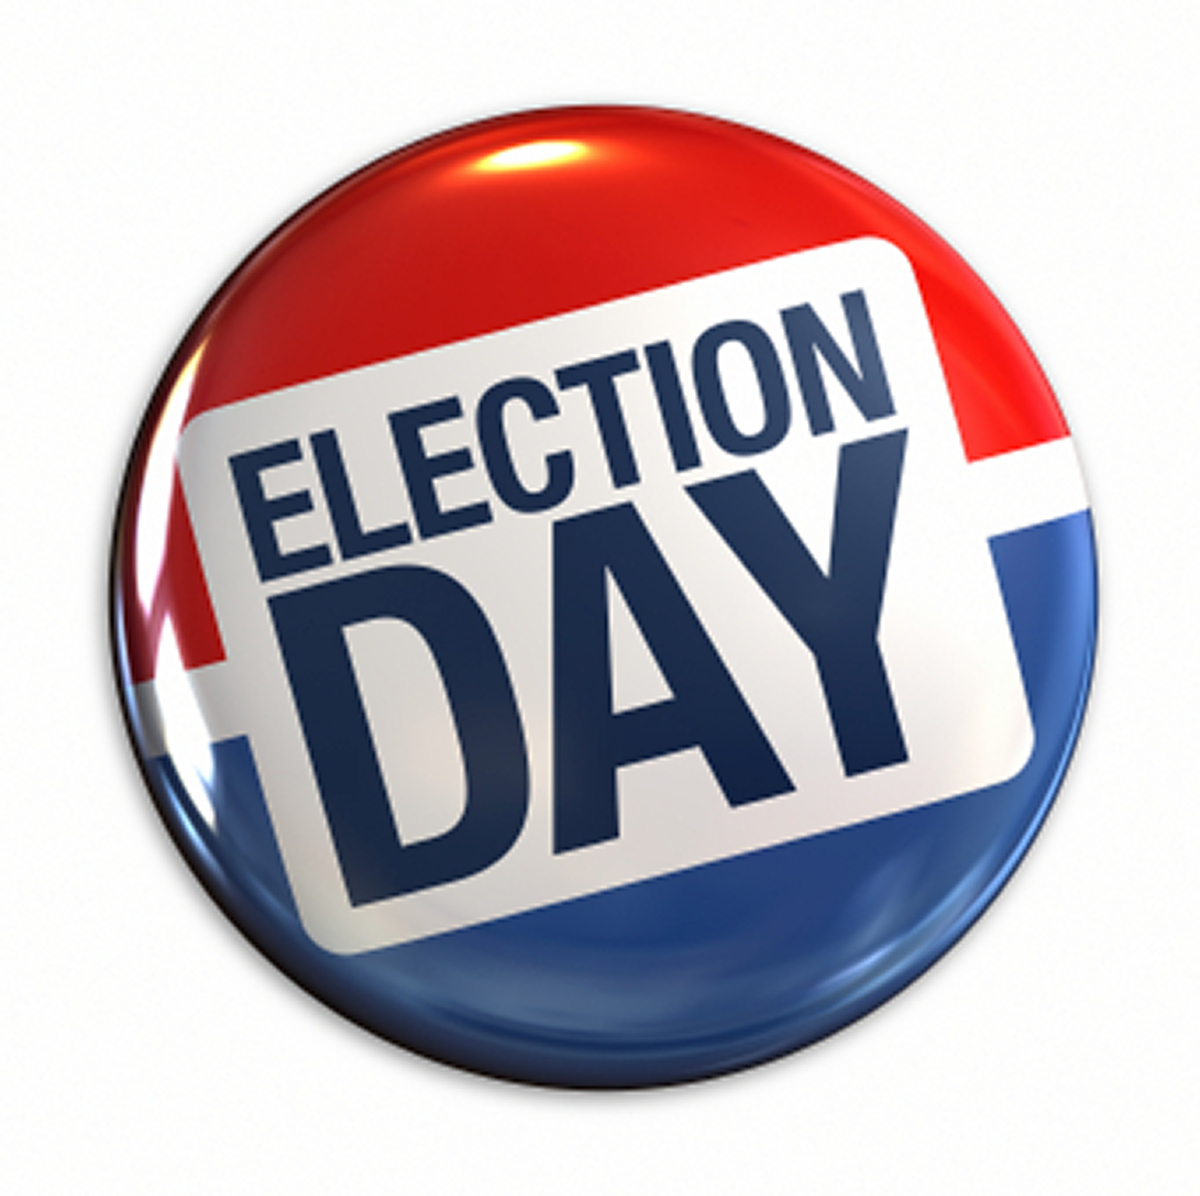 Election Day Clipart Images.